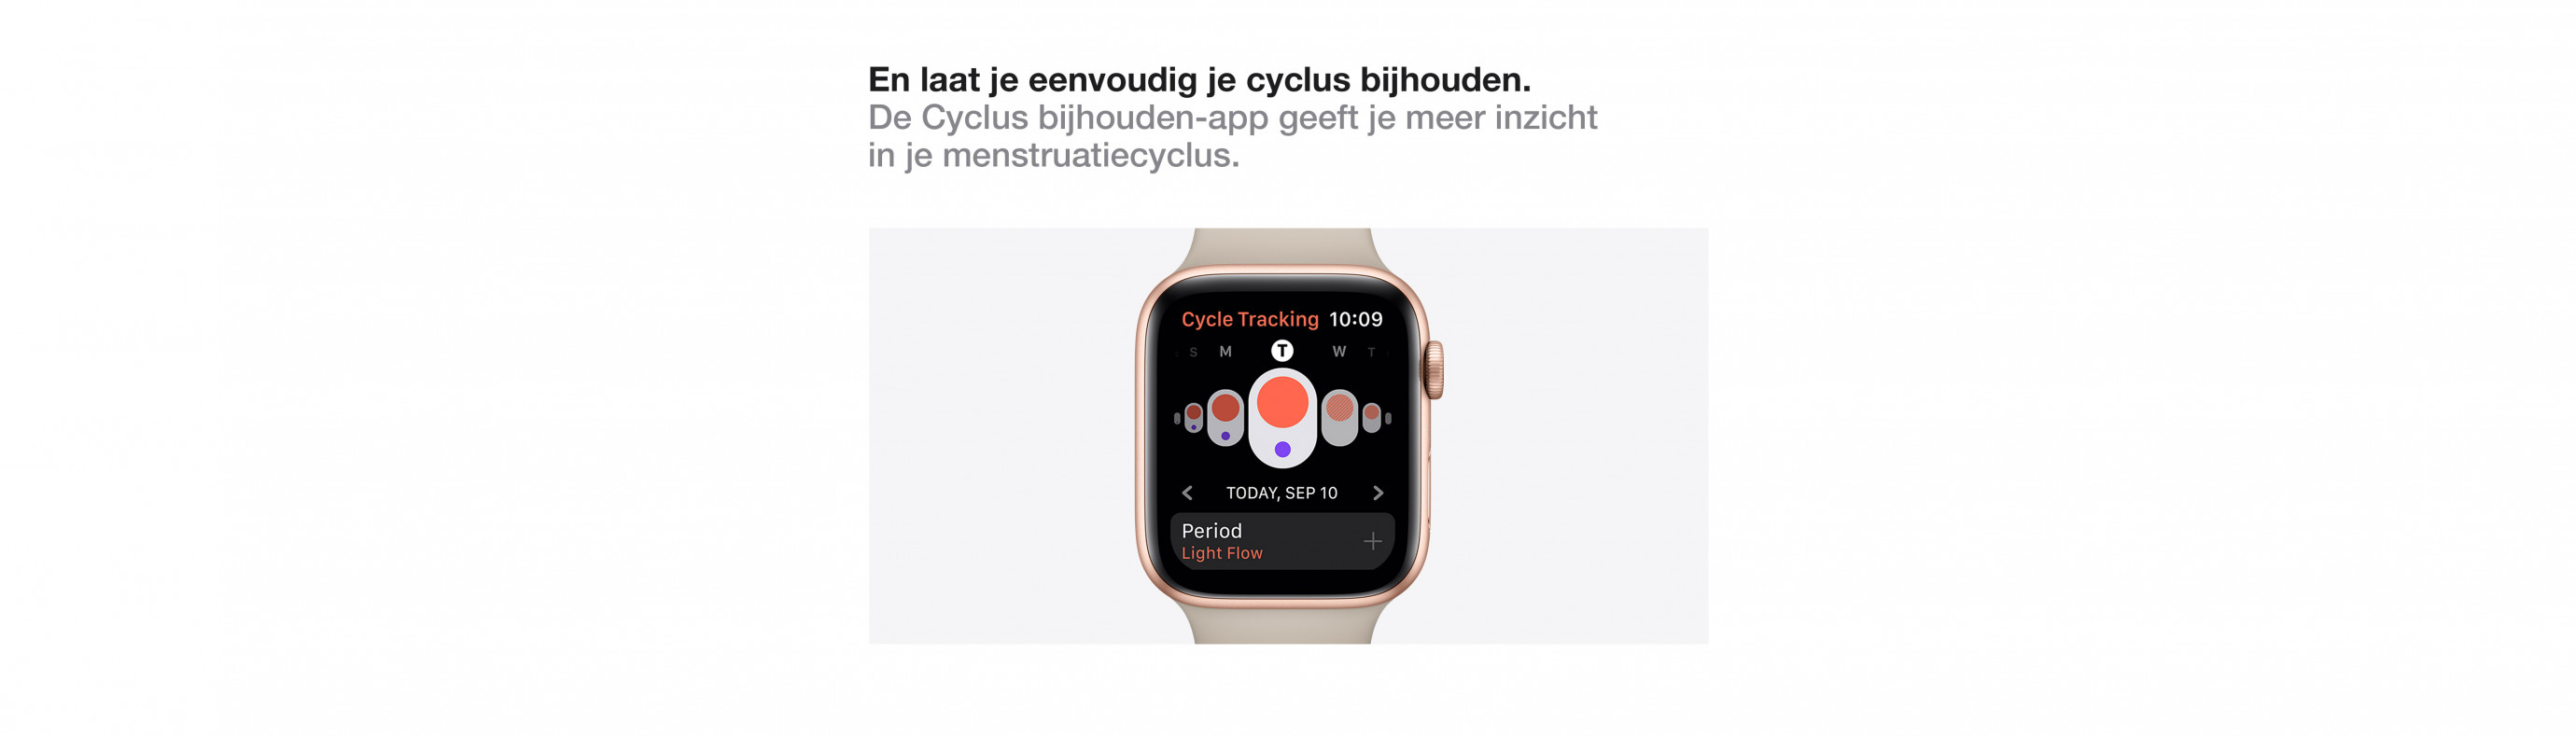 AppleWatchSeries5-productpage_07.jpg